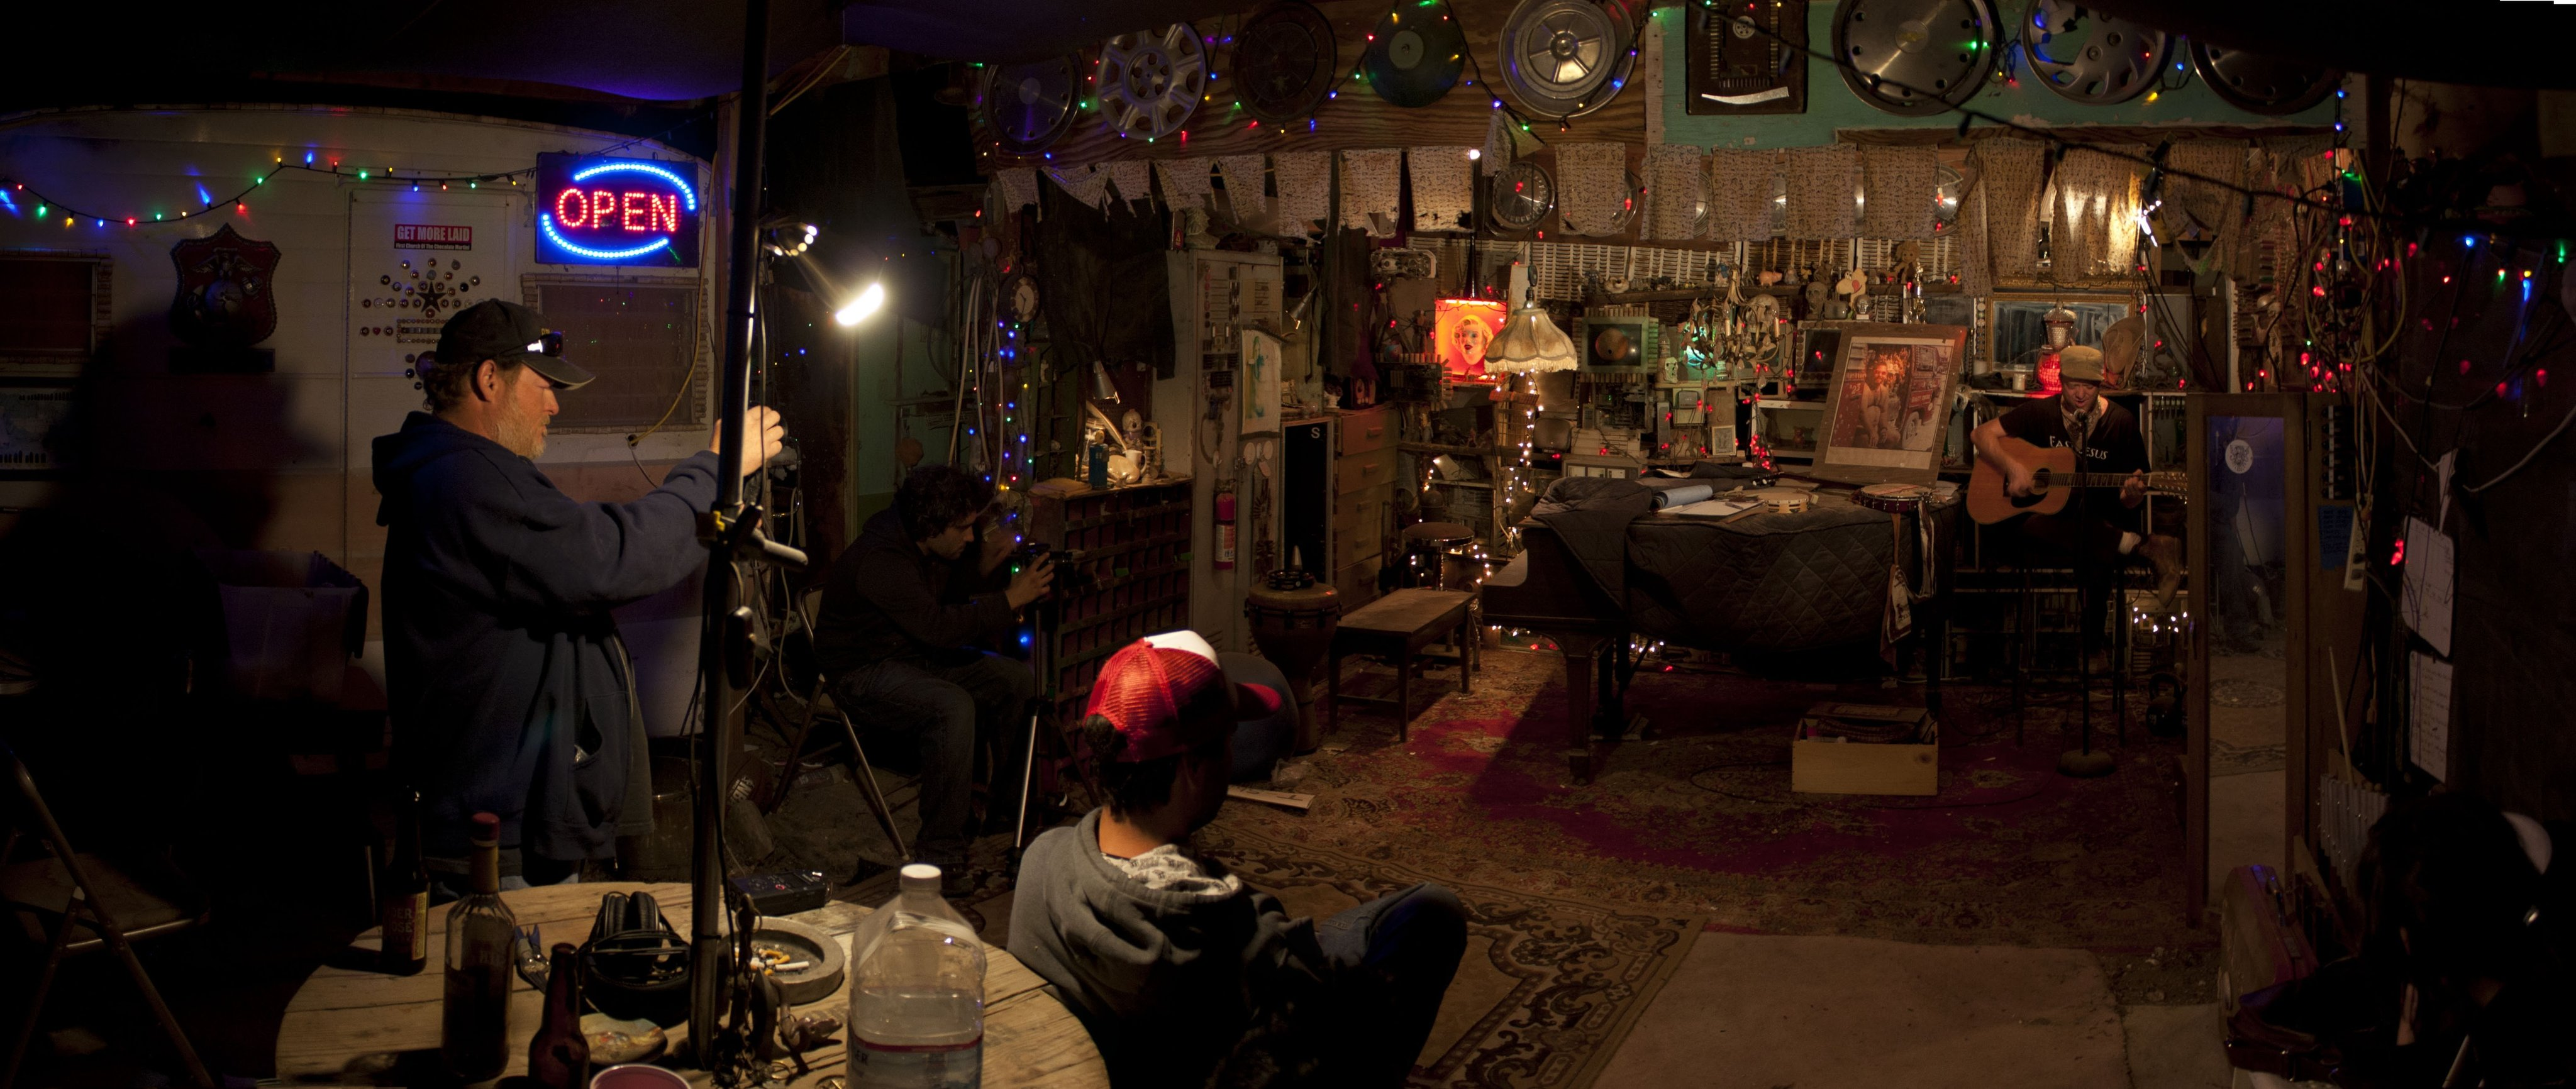 flip_music_room_pano-jpg.44932_An Introduction To East Jesus_Squatting_Squat the Planet_8:13 PM